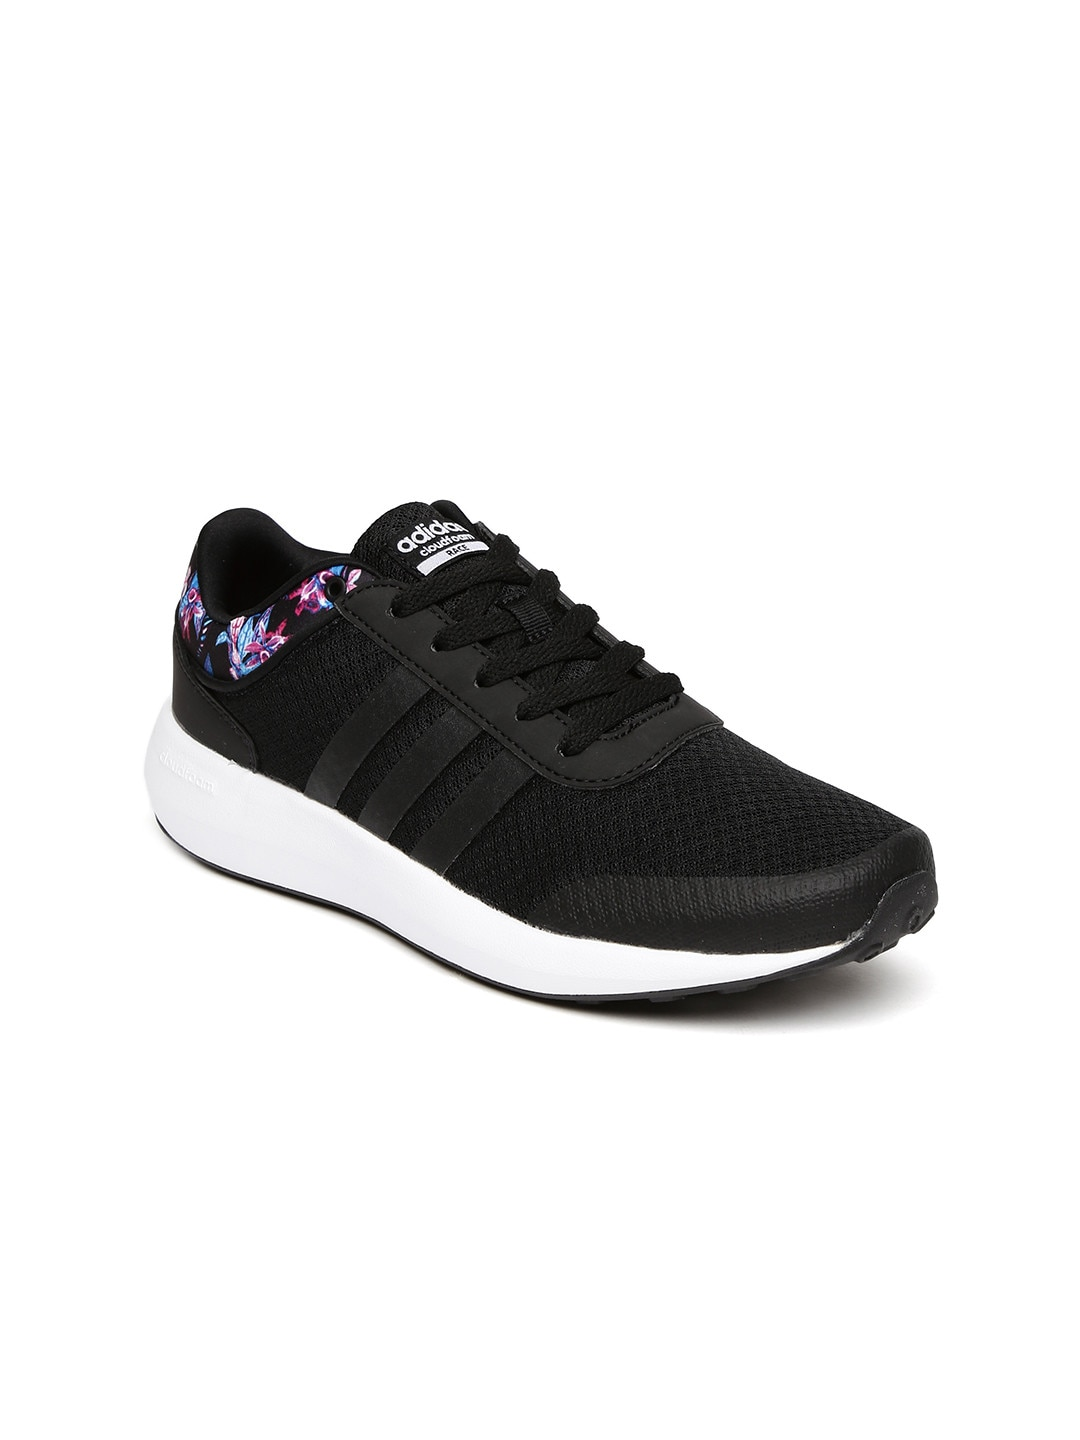 acd00d82f3f9 Adidas aw3845 Neo Women Black Cloudfoam Race Sneakers- Price in India